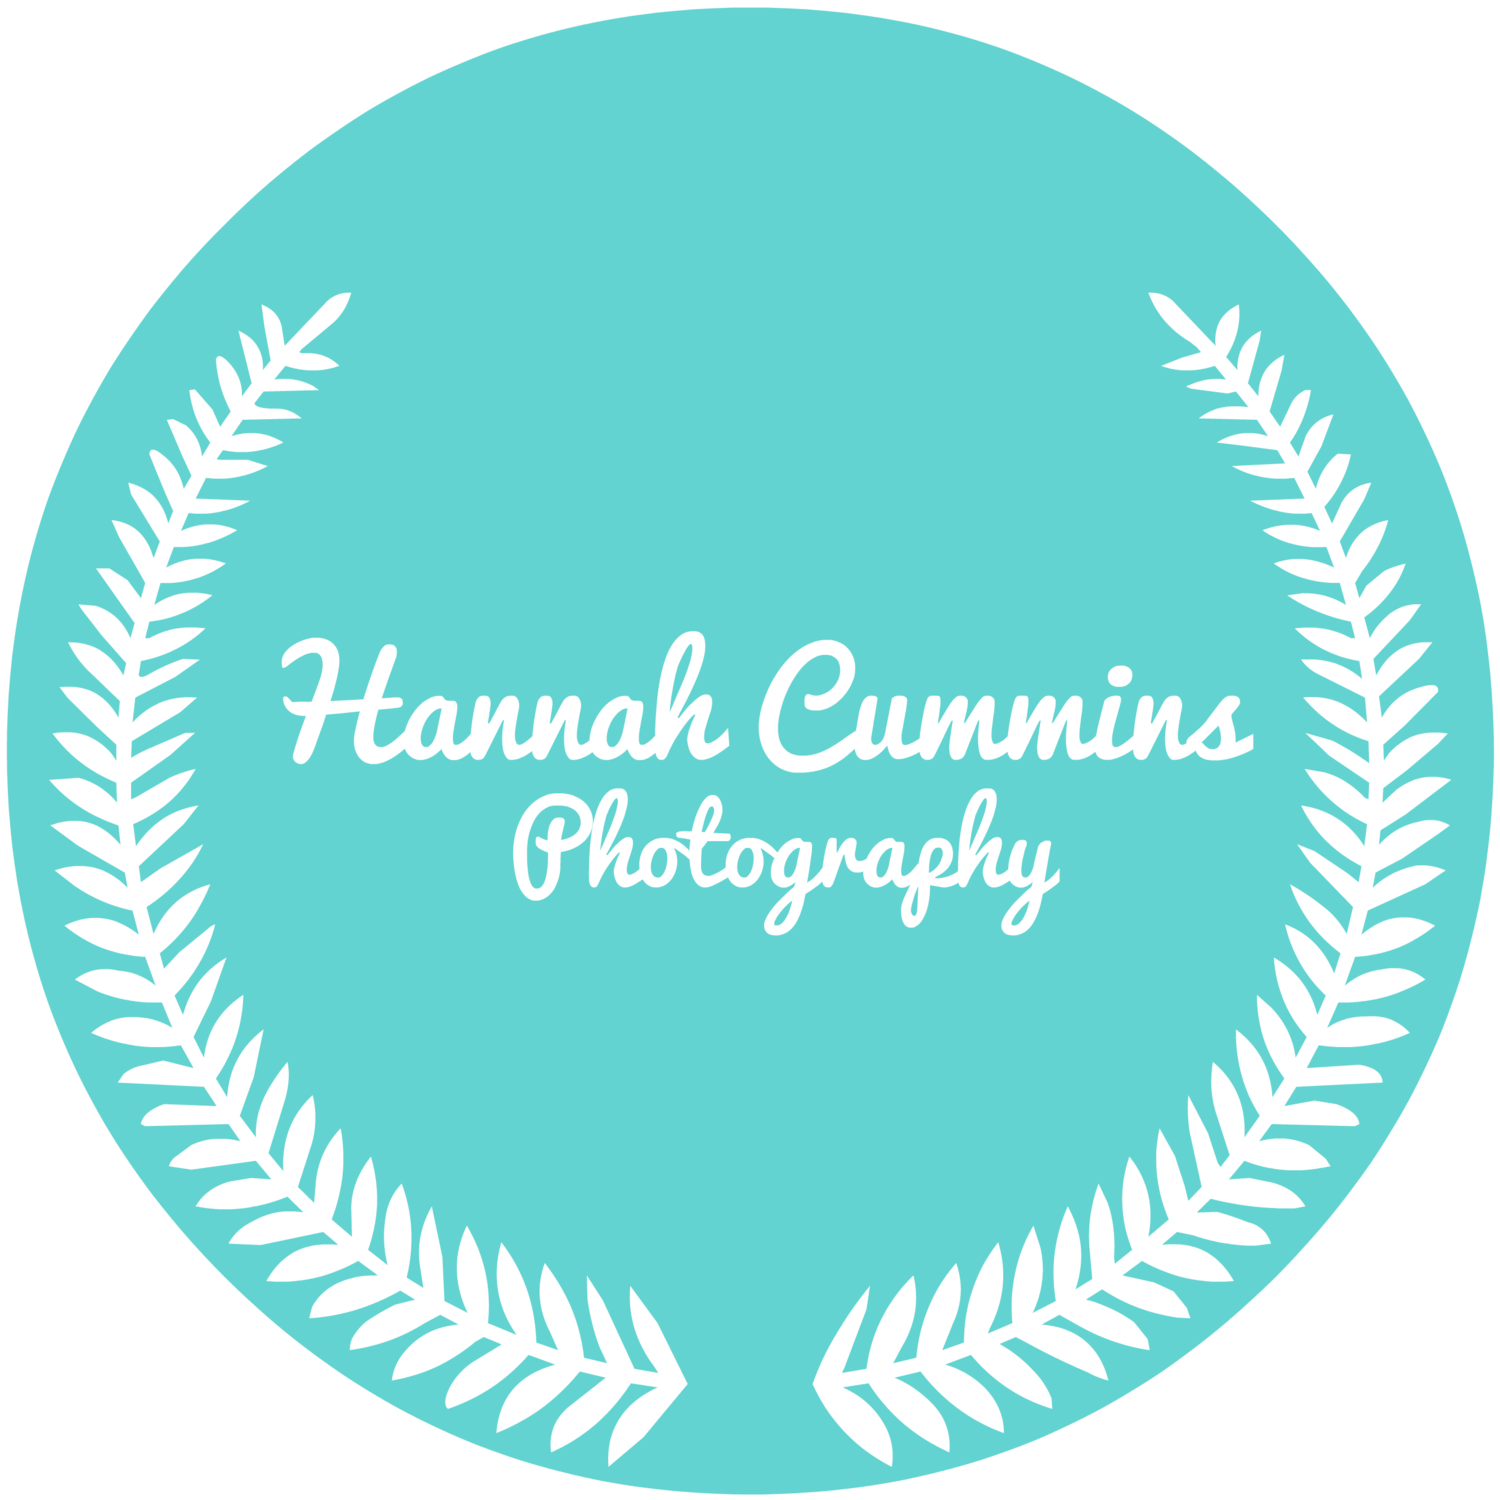 Hannah Cummins Photography